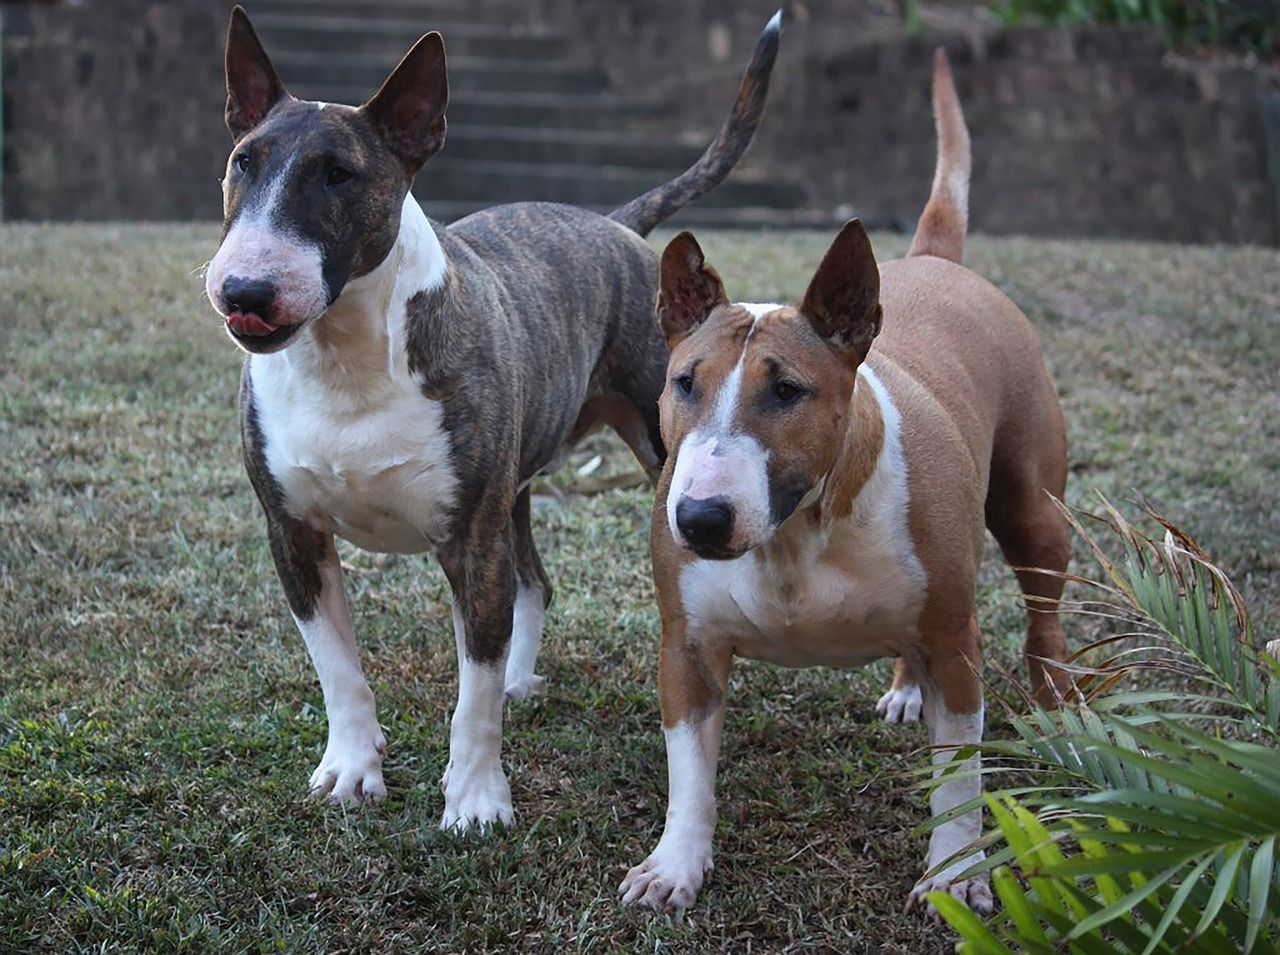 Two bullterriers standing in the grass Dog breeds, Bull